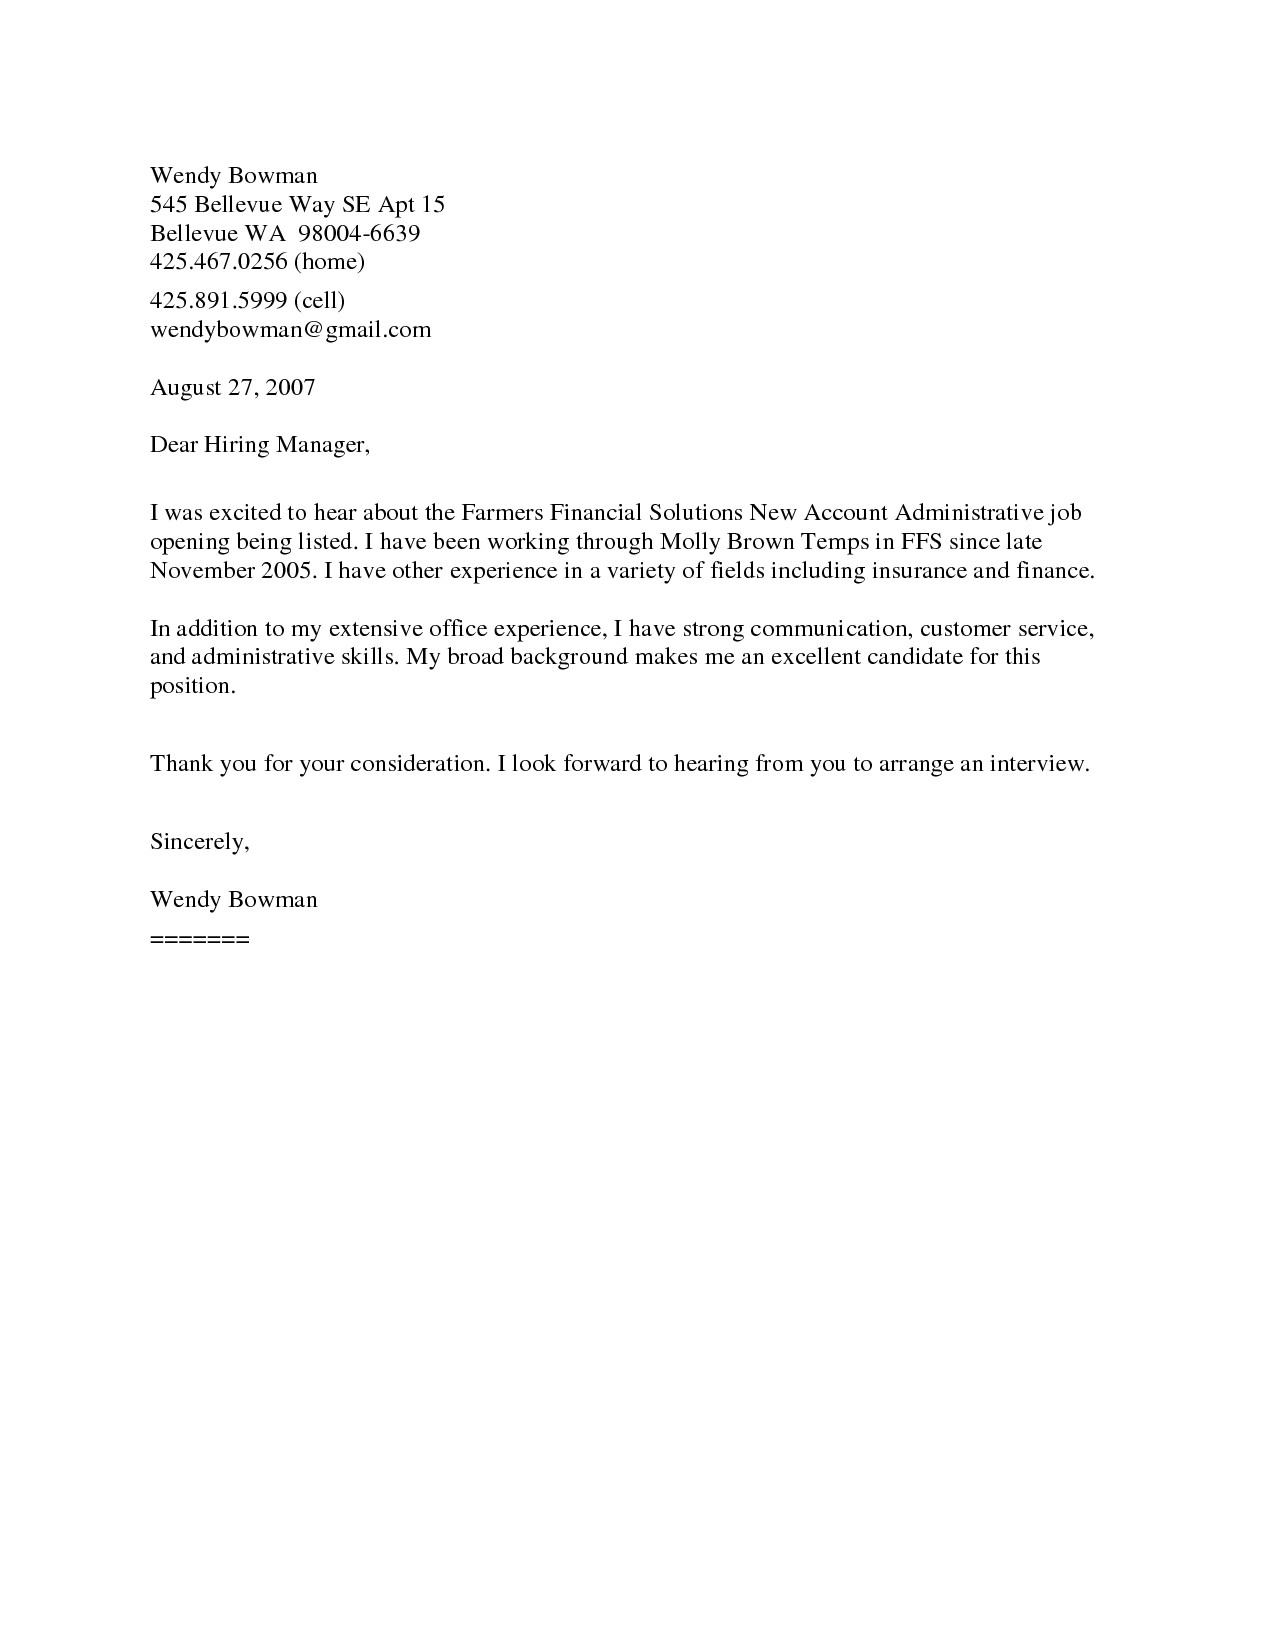 Template for Resume Cover Letter Example Of Cover Letter for Resume Template